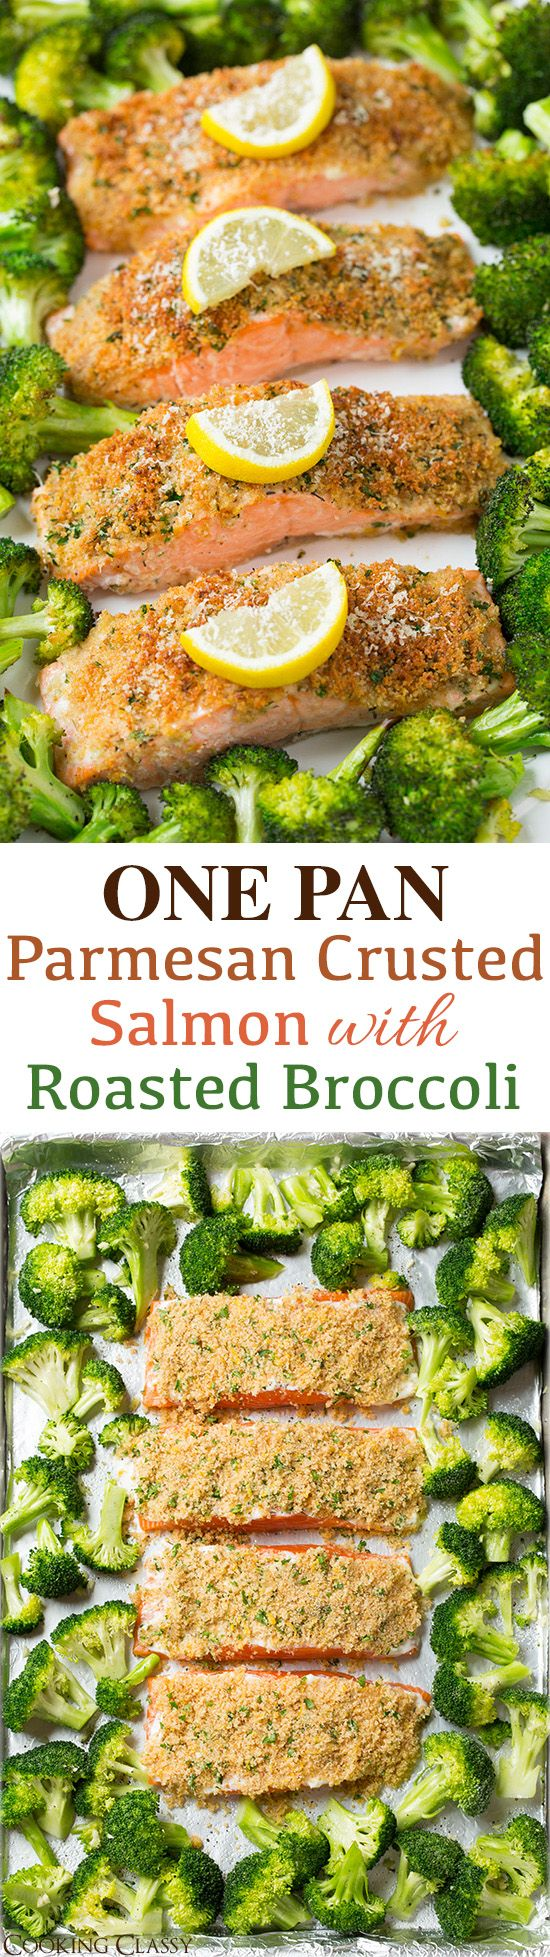 Single Sheet Pan Parmesan Crusted Salmon with Roasted Broccoli Recipe via Cooking Classy - everything is roasted together on one pan so clean up is a breeze! It's healthy and it tastes incredible! #sheetpansuppers #sheetpanrecipes #sheetpandinners #onepanmeals #healthyrecipes #mealprep #easyrecipes #healthydinners #healthysuppers #healthylunches #simplefamilymeals #simplefamilyrecipes #simplerecipes